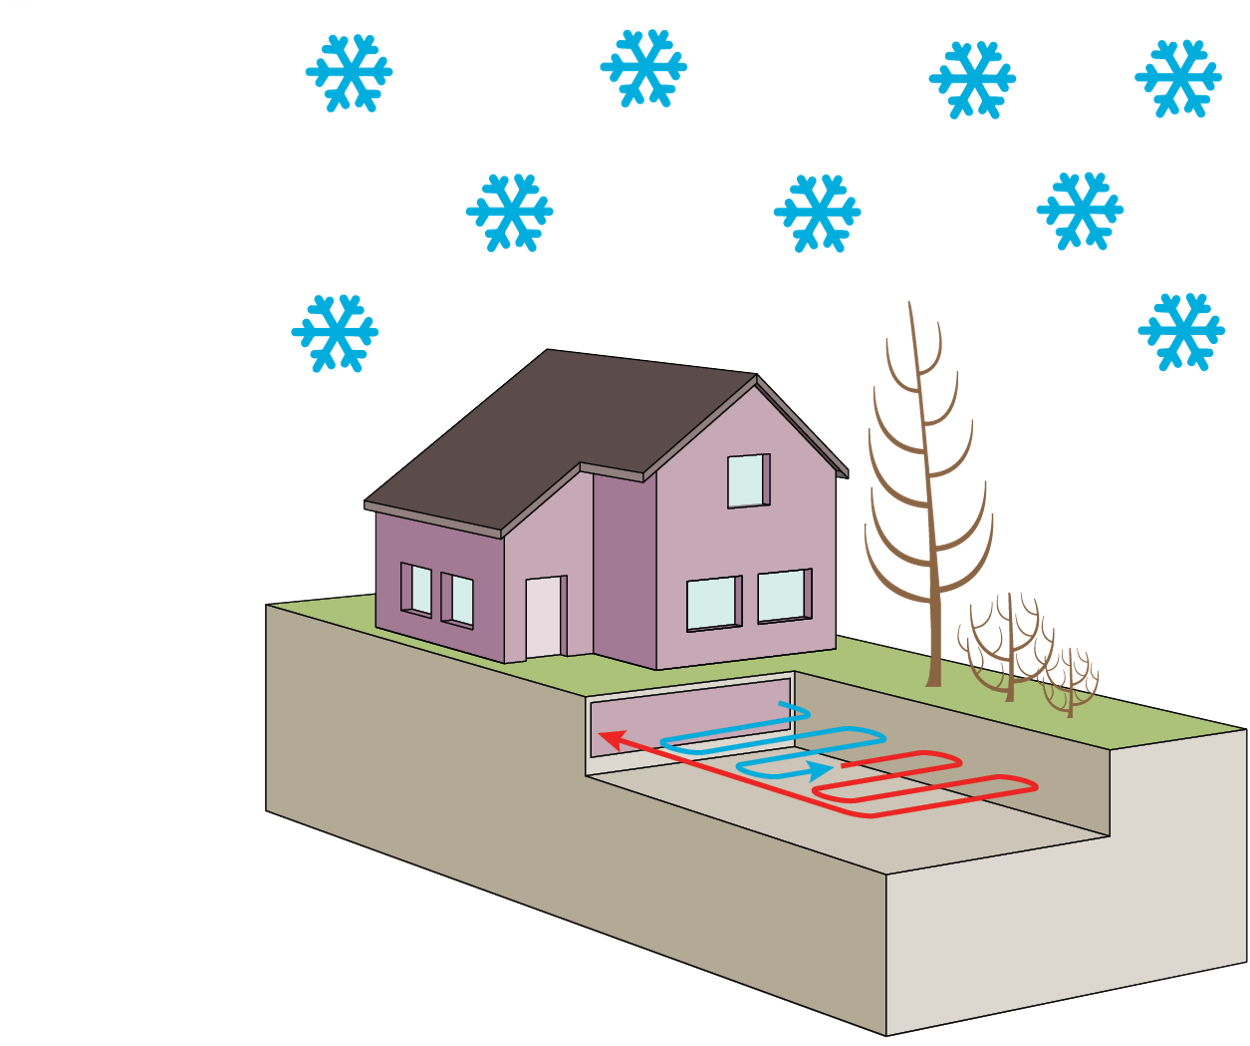 Factory clipart greenhouse gas emission. Community energy explorer cooling